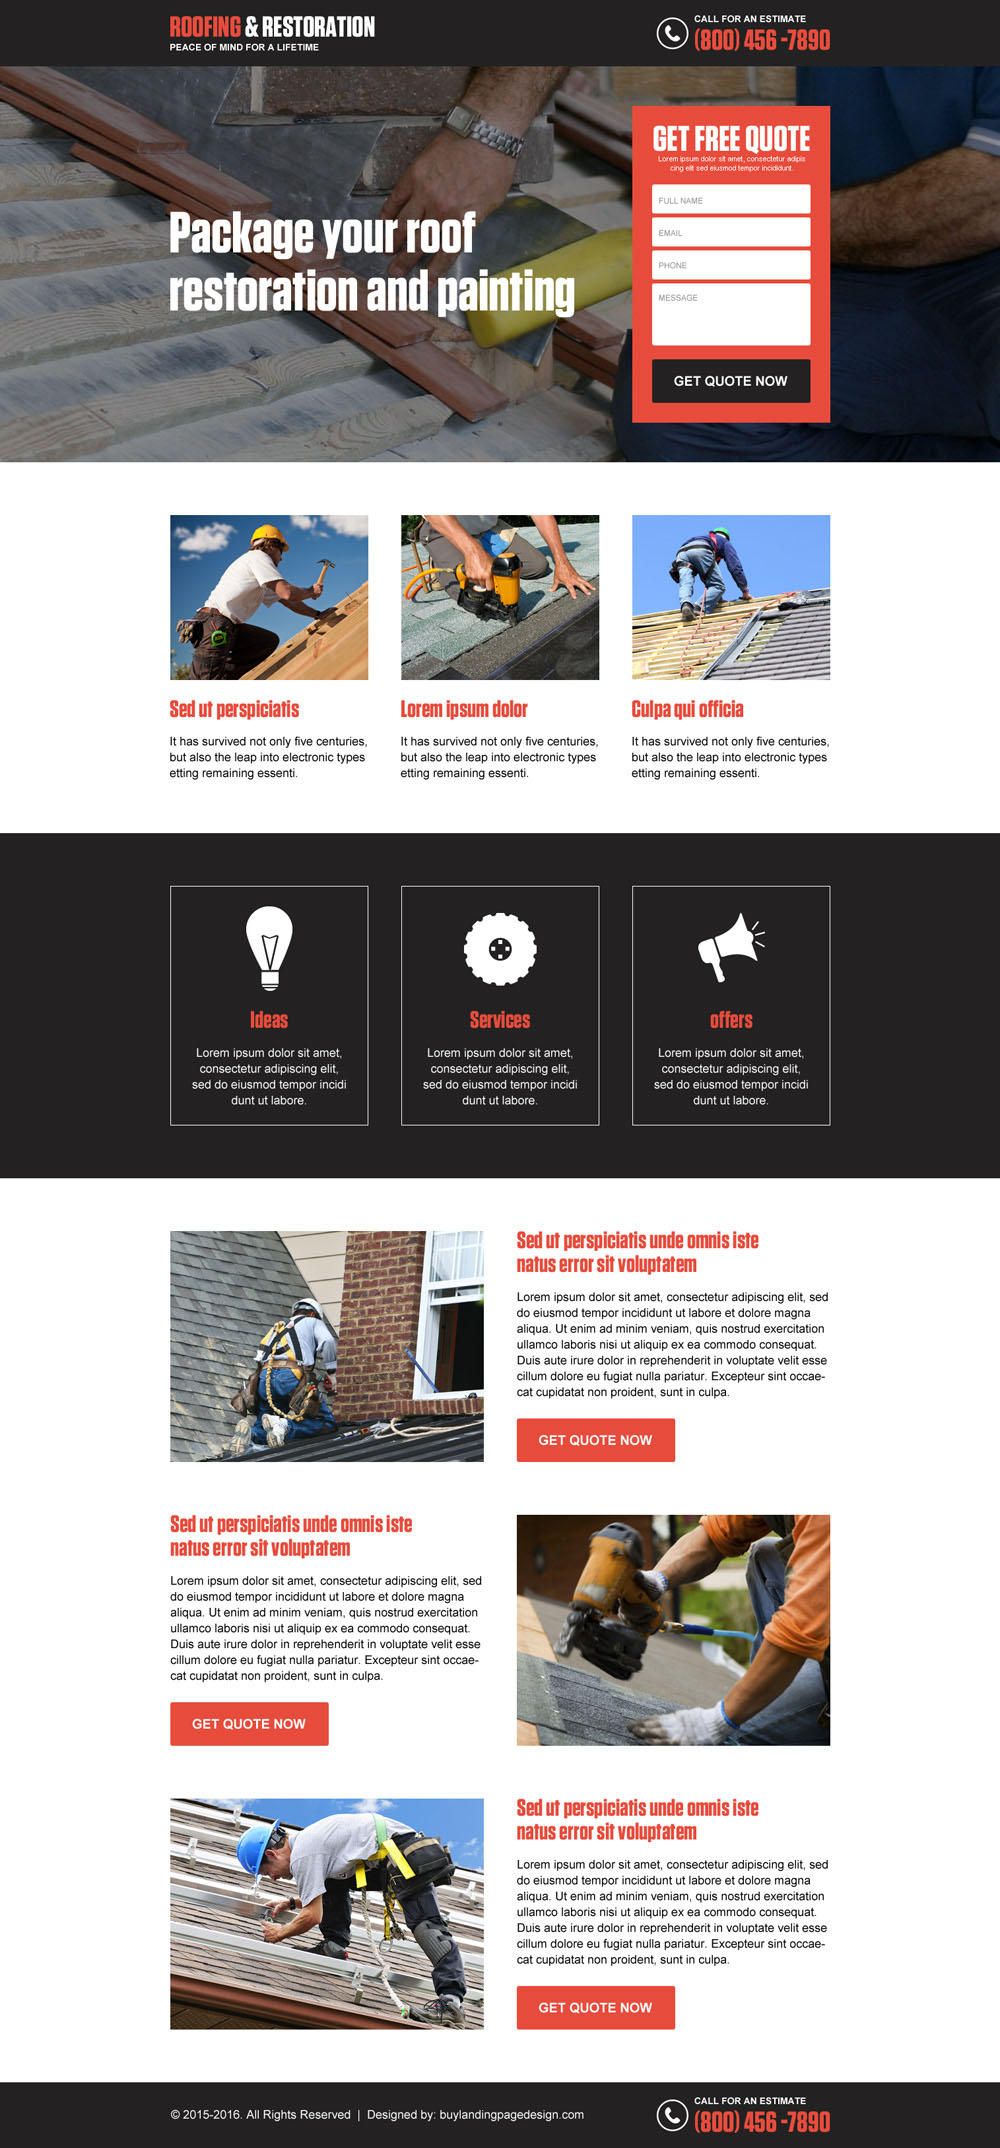 roofing-and-restoration-converting-lead-capture-landing-page-design-001